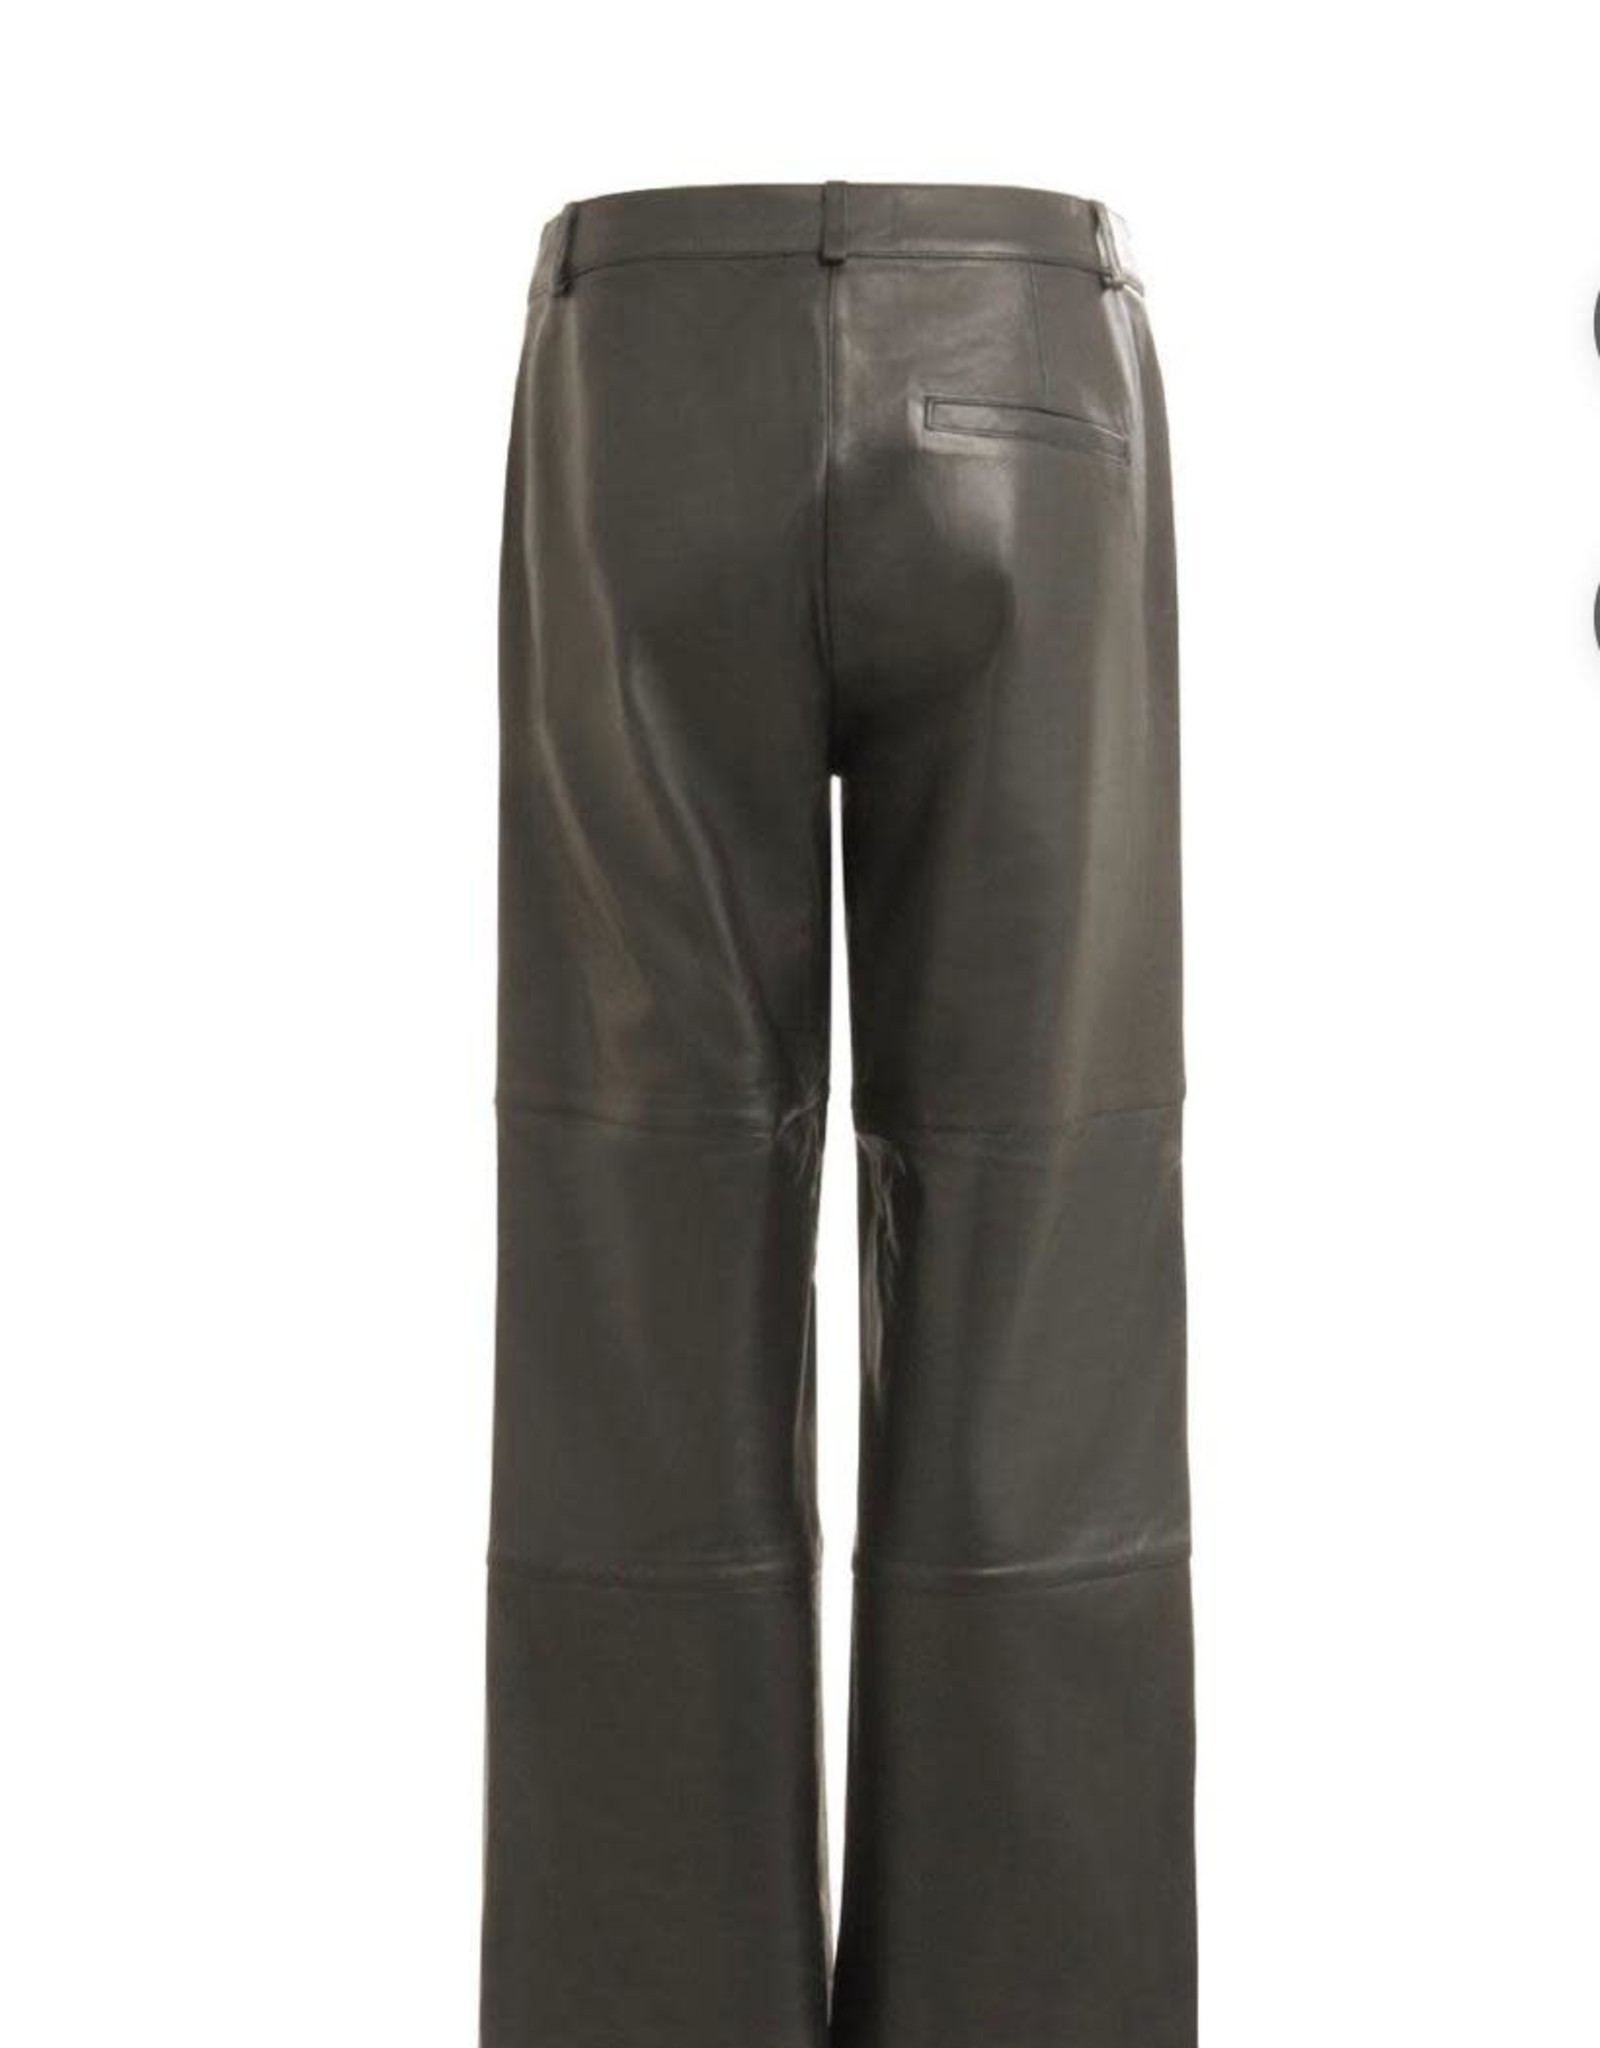 COSTER COPENHAGEN COSTER LAMB LEATHER 7-8  TROUSERS 204-3464